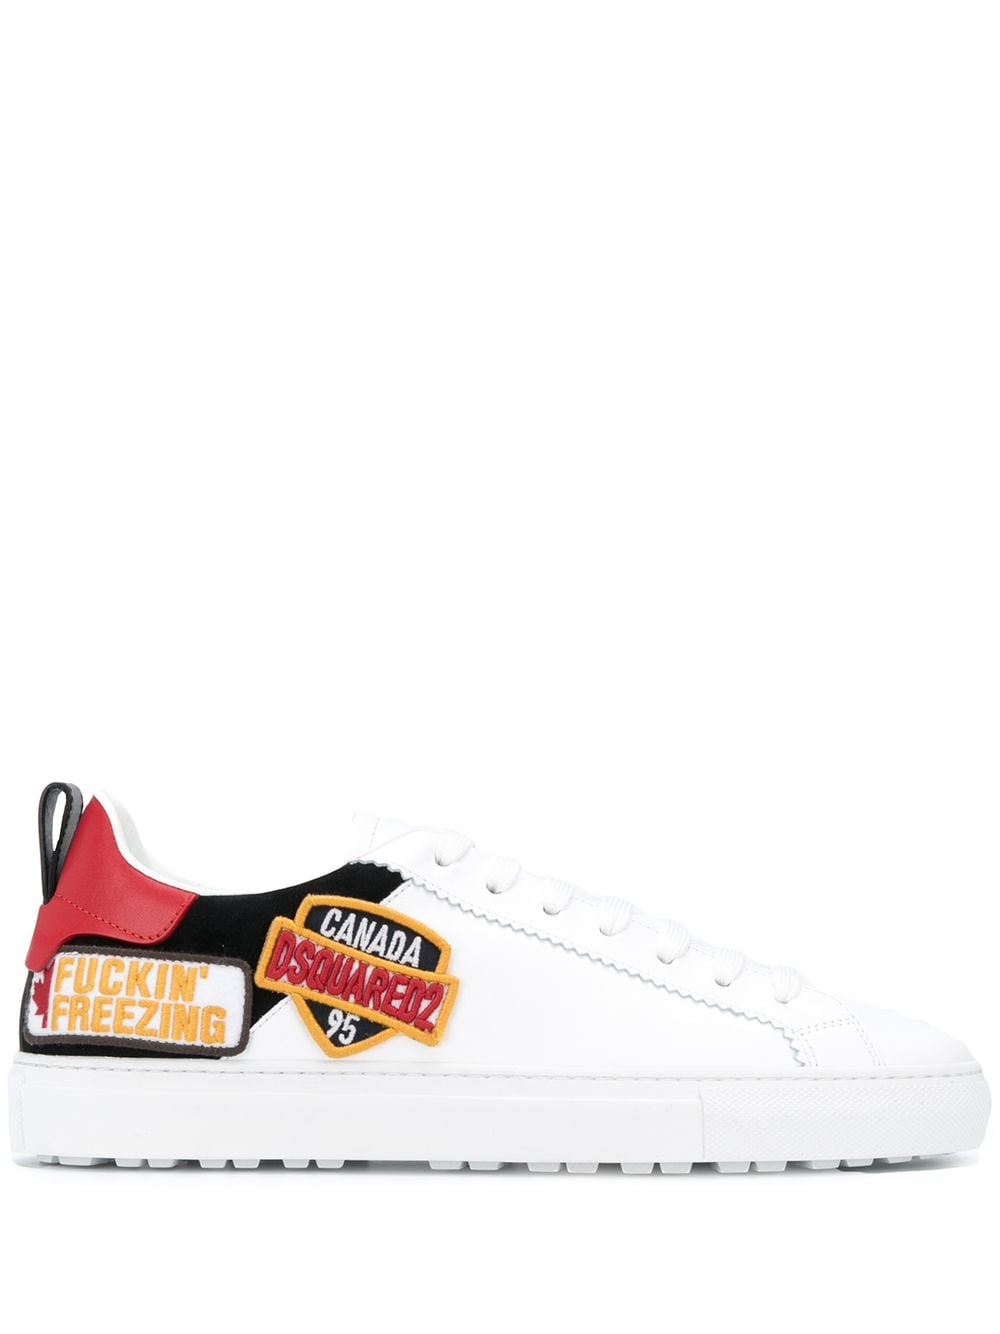 DSQUARED2 San Diego Sneakers White/Black